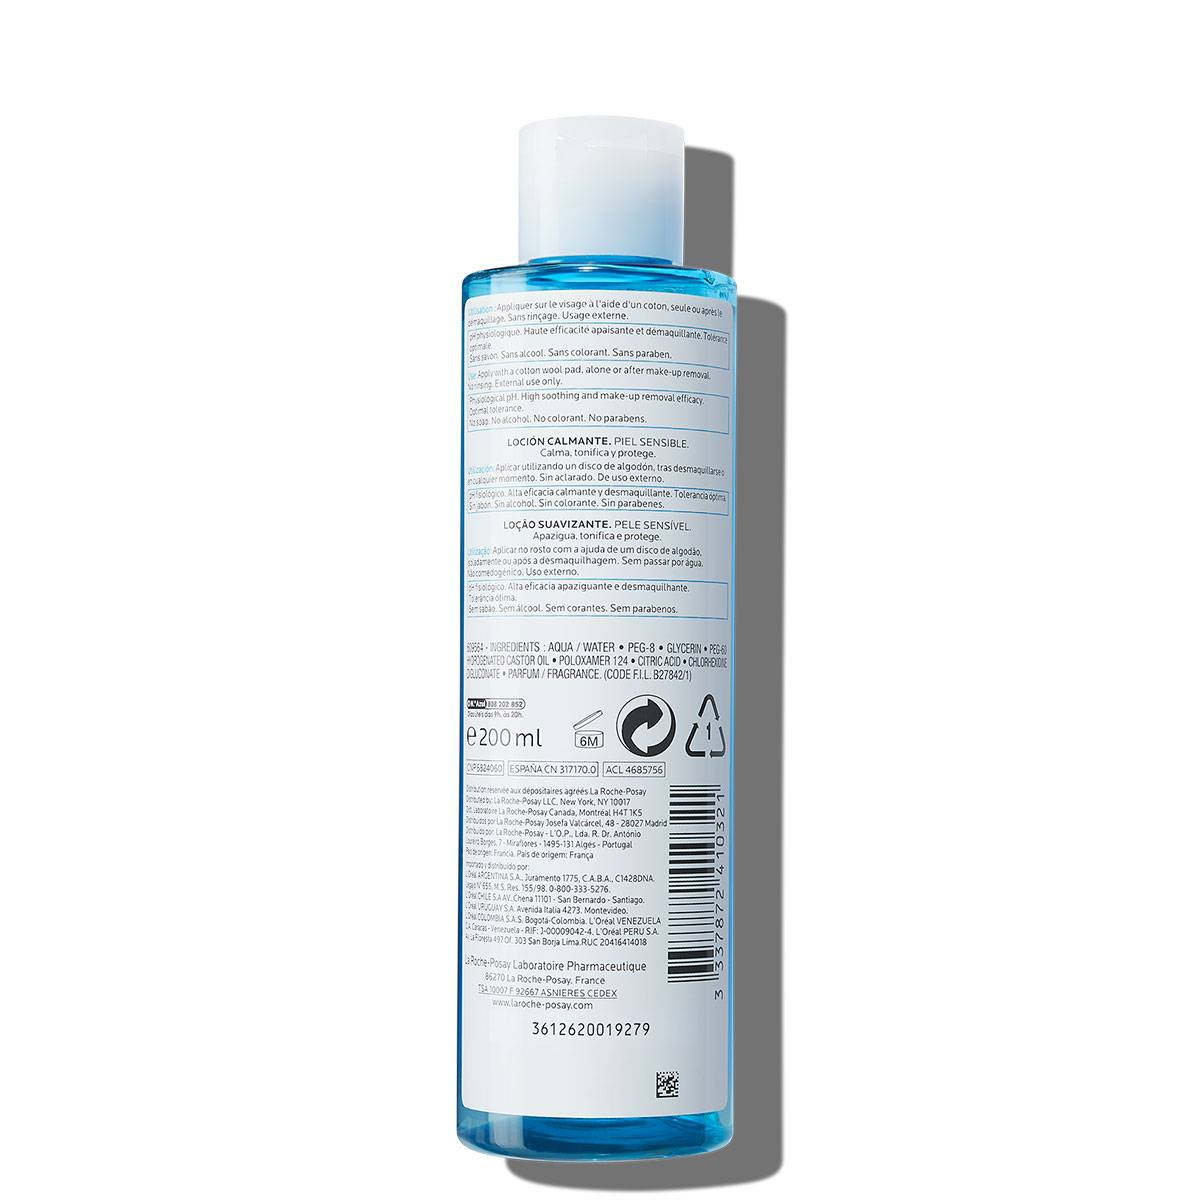 La Roche Posay ProduktSide Ansiktsrens Physiological Soothing Lotion